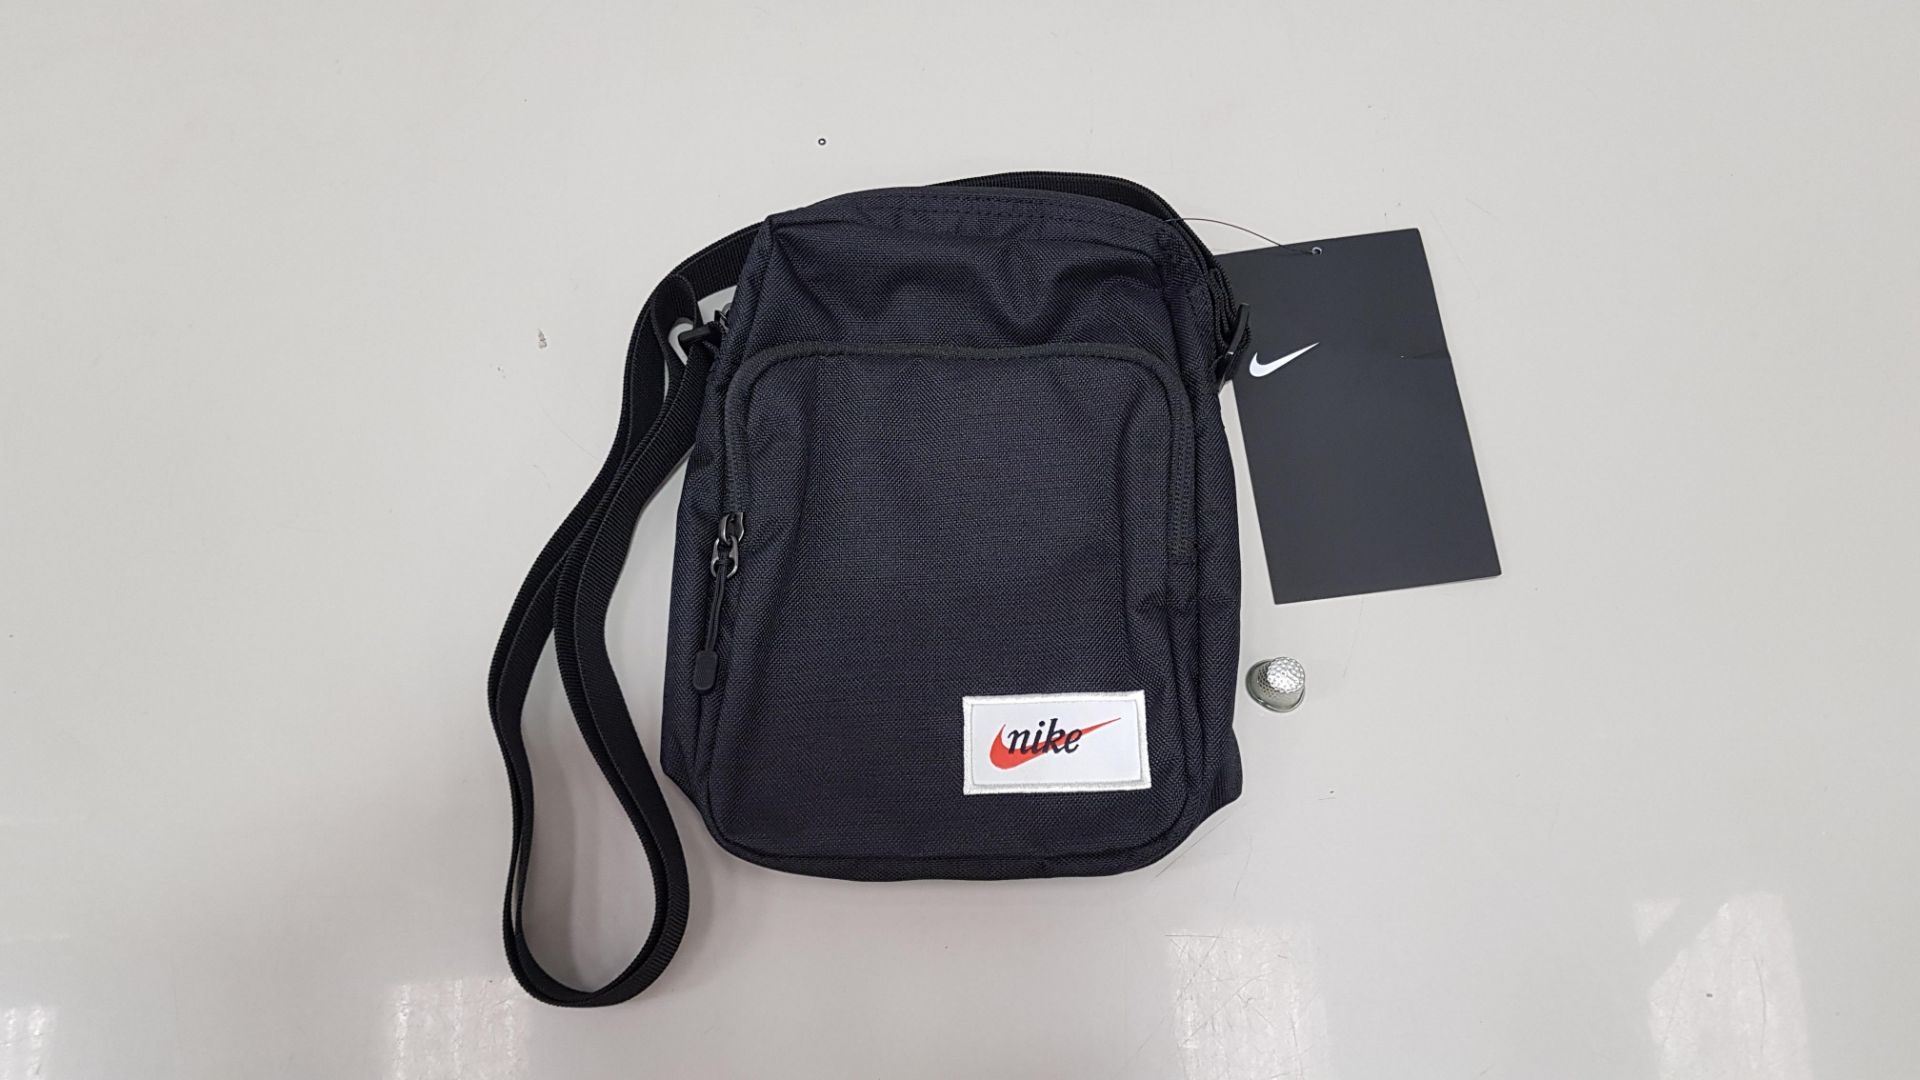 22 X BRAND NEW NIKE SHOULDER BAGS